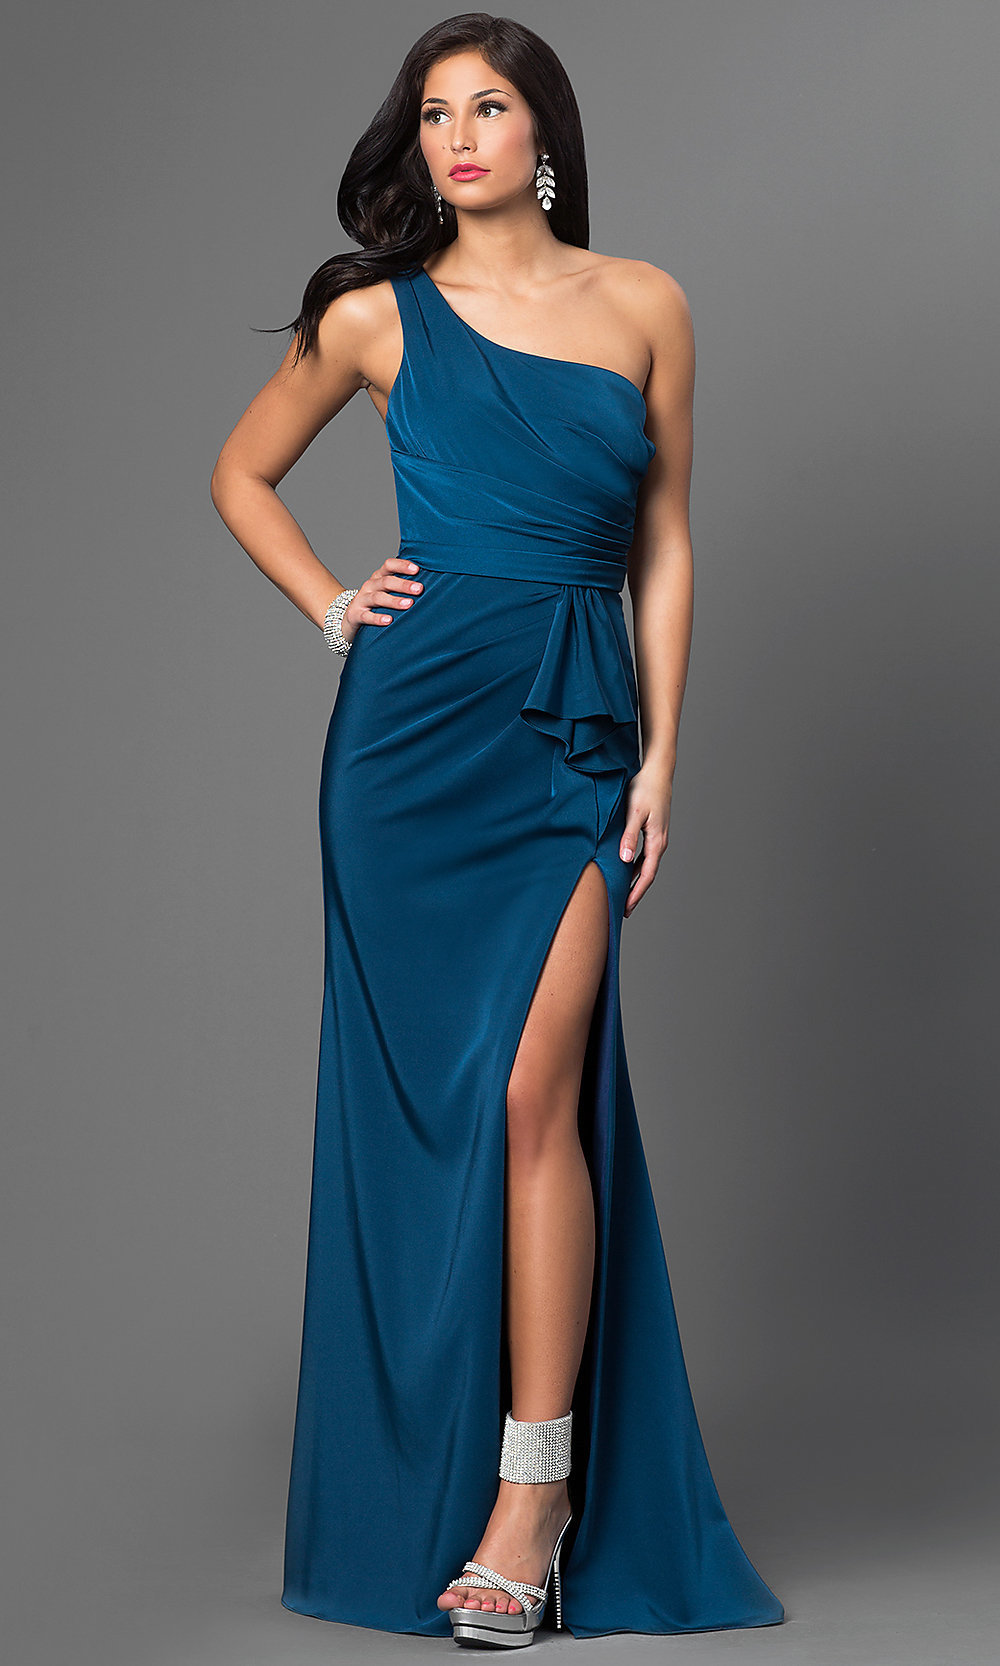 One Shoulder Prom Dresses, Formal Gowns